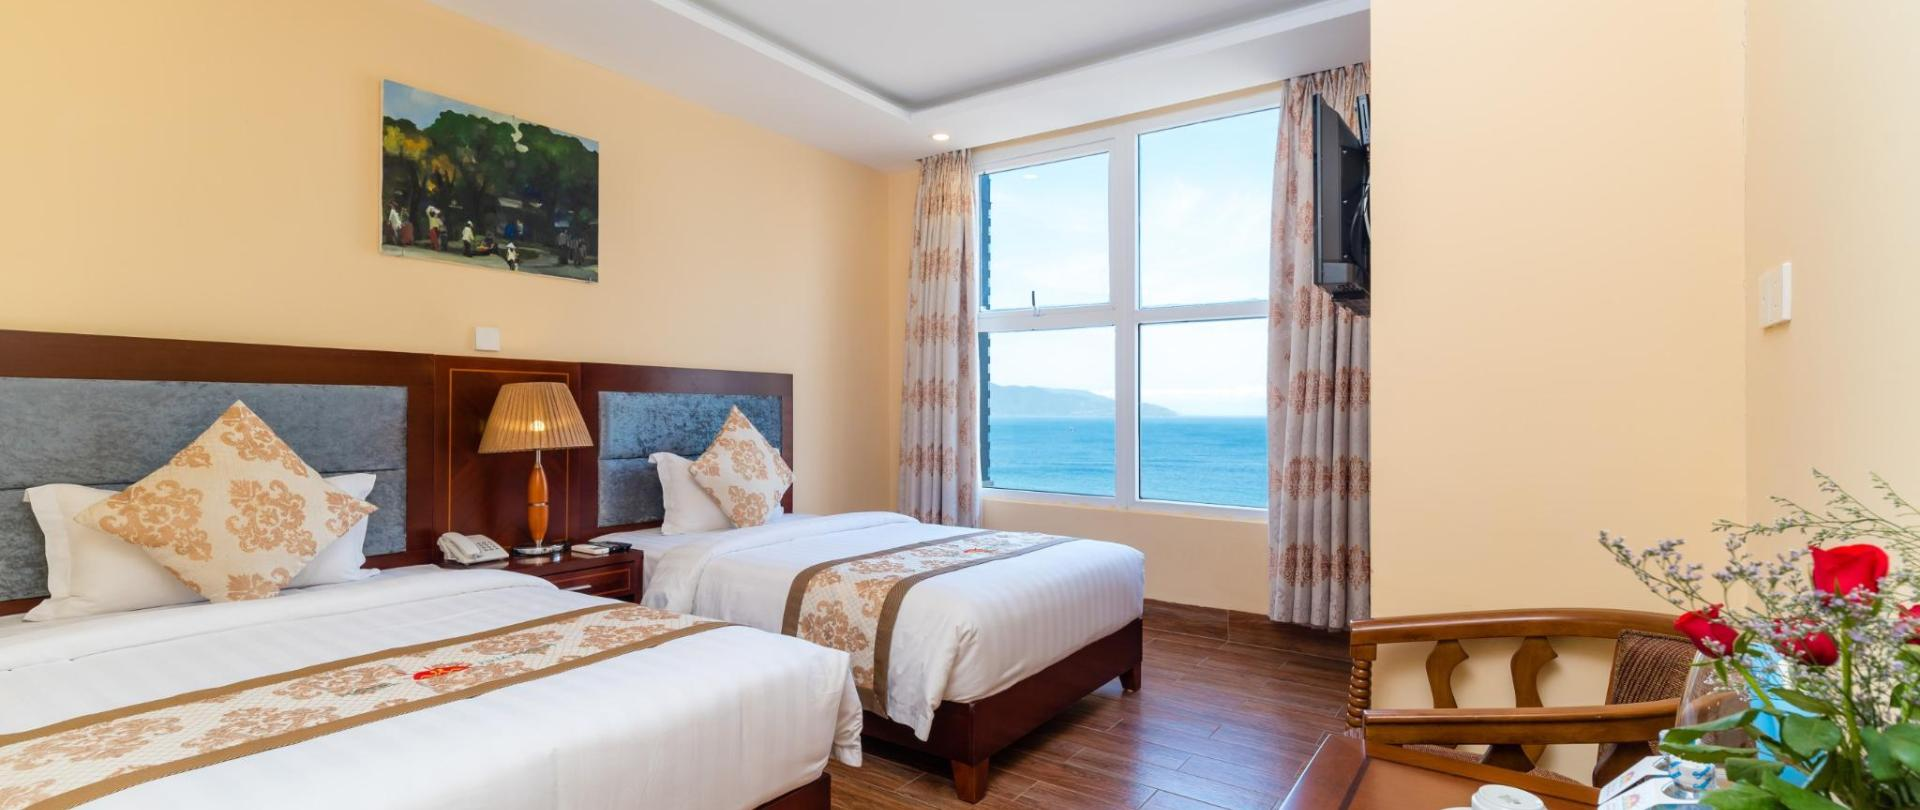 Superior Room with Sea View.jpg